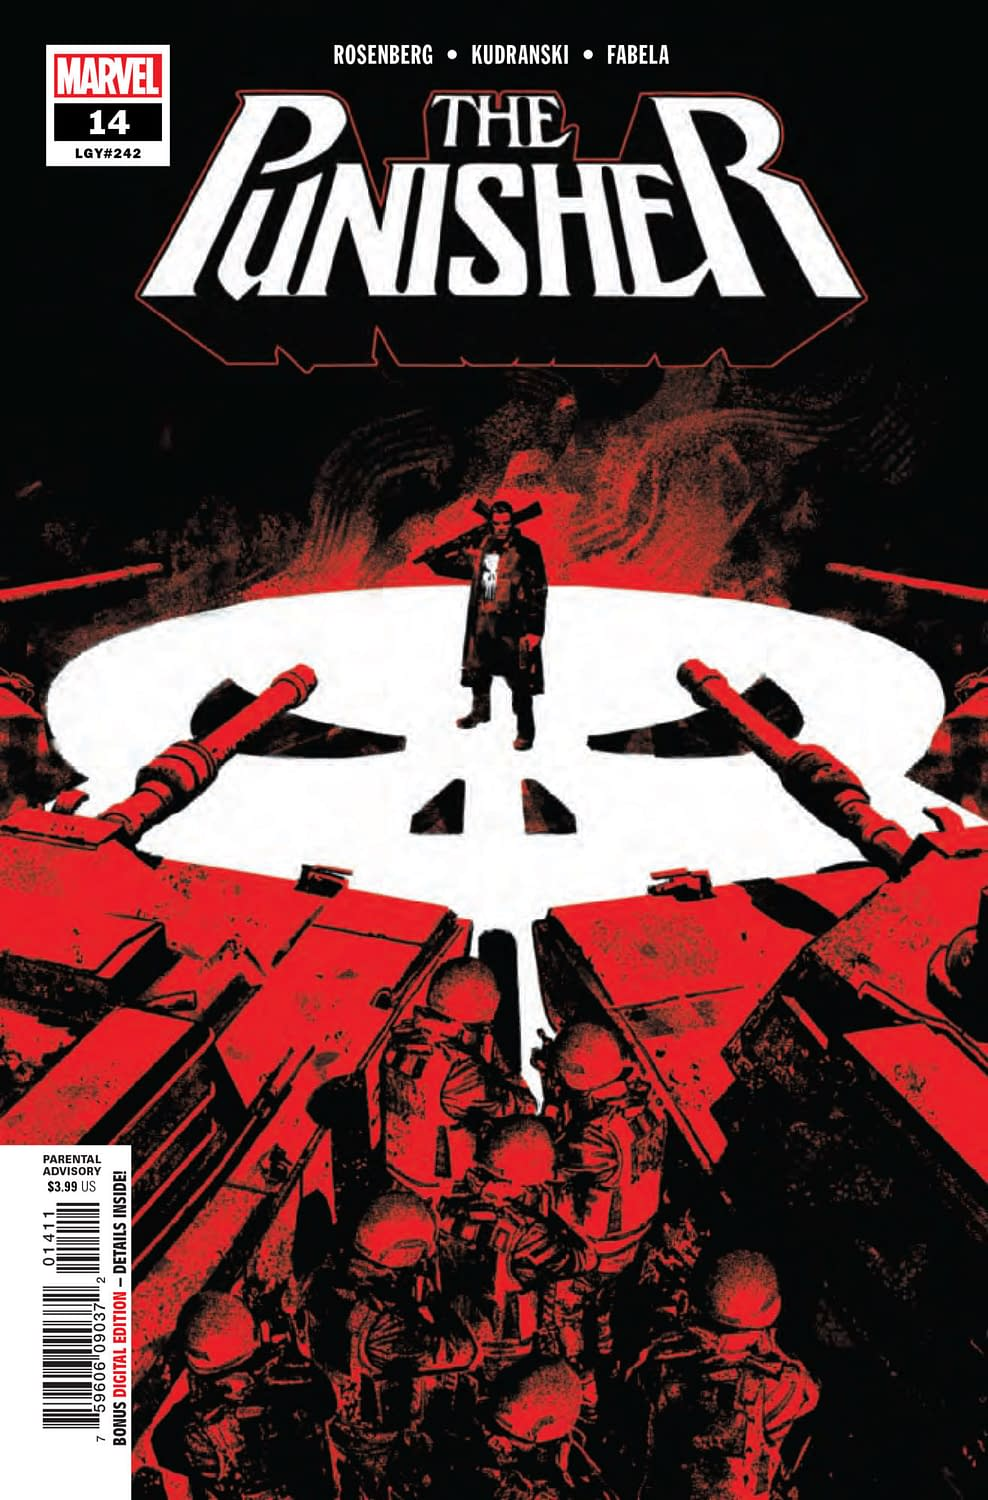 Does Auto Insurance Cover The Punisher? Punisher #14 [Preview]